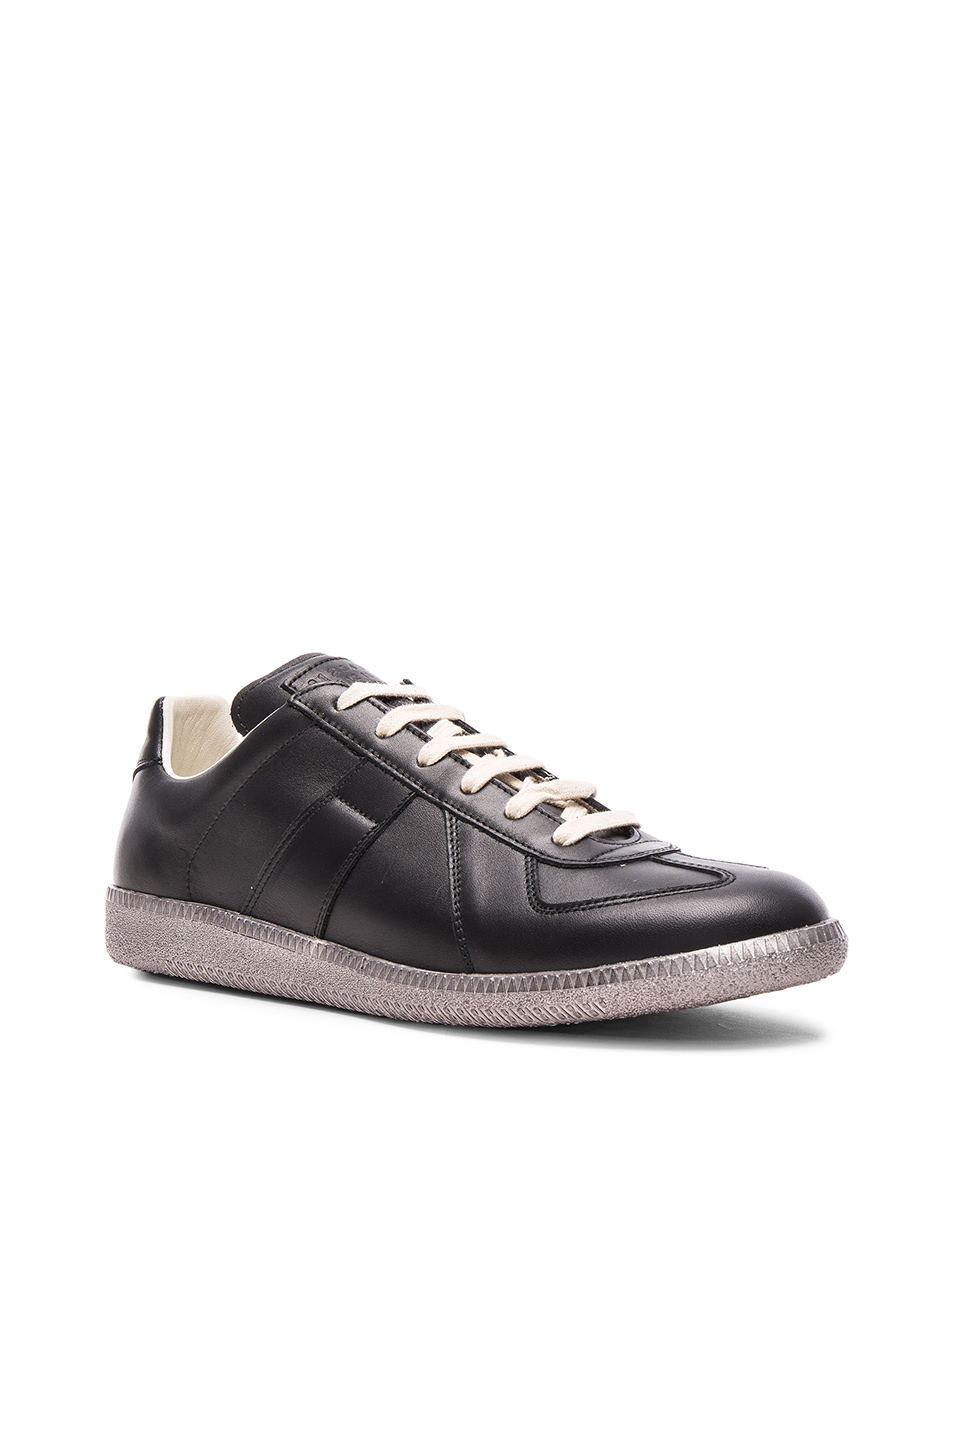 Maison Margiela Leather Replica Sneakers in Black